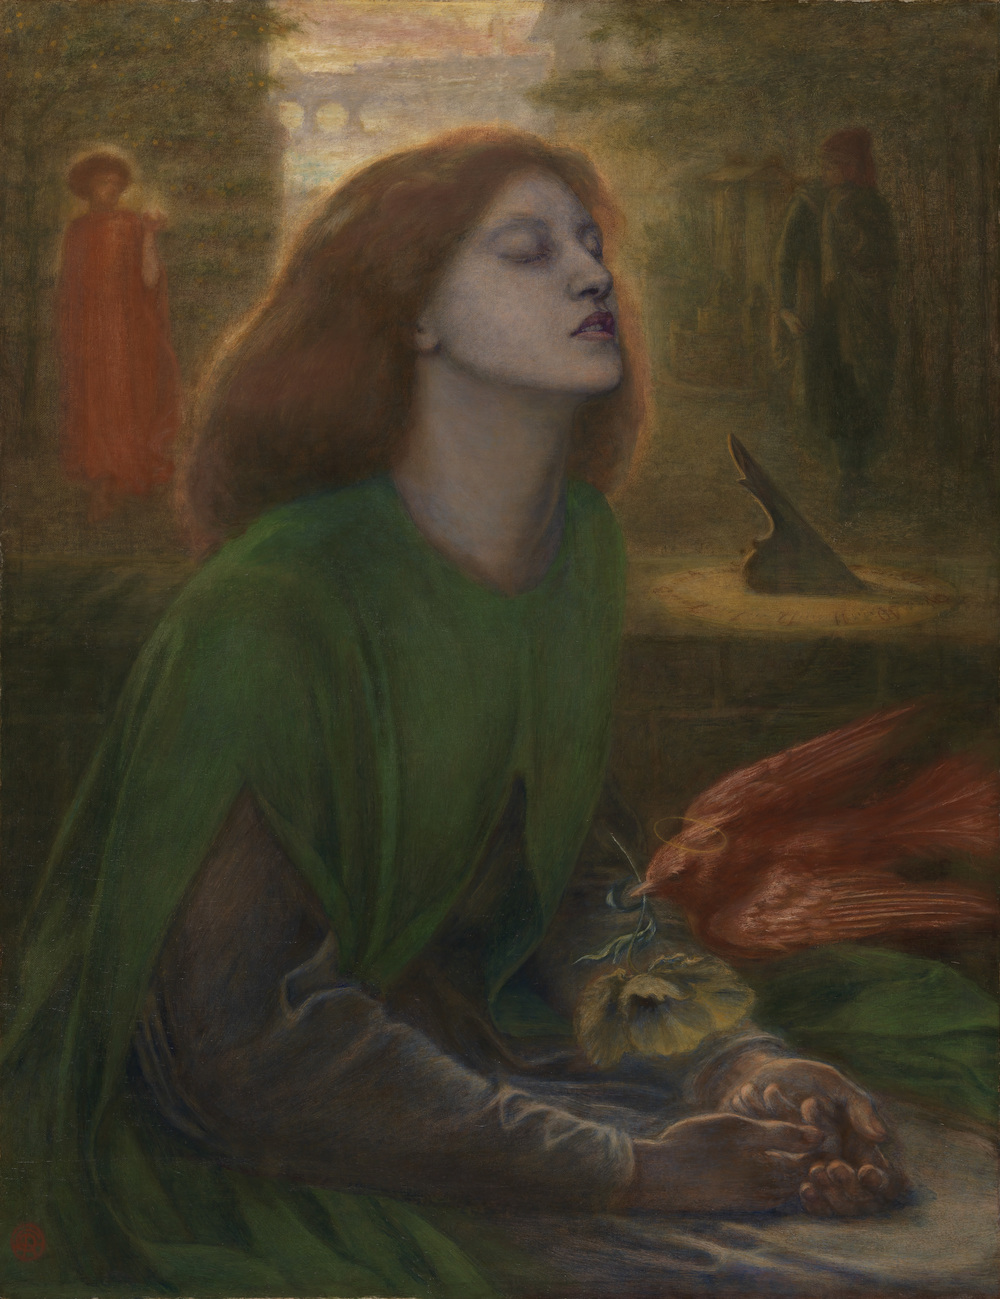 Beata Beatrix c. 1864-70, Dante Gabriel Rossetti 1828 - 1882, Oil paint on canvas, 864 x 660 mm, Tate. Presented by Georgiana Baroness Mount-Temple in memory of her husband, Francis, Baron Mount-Temple 1889